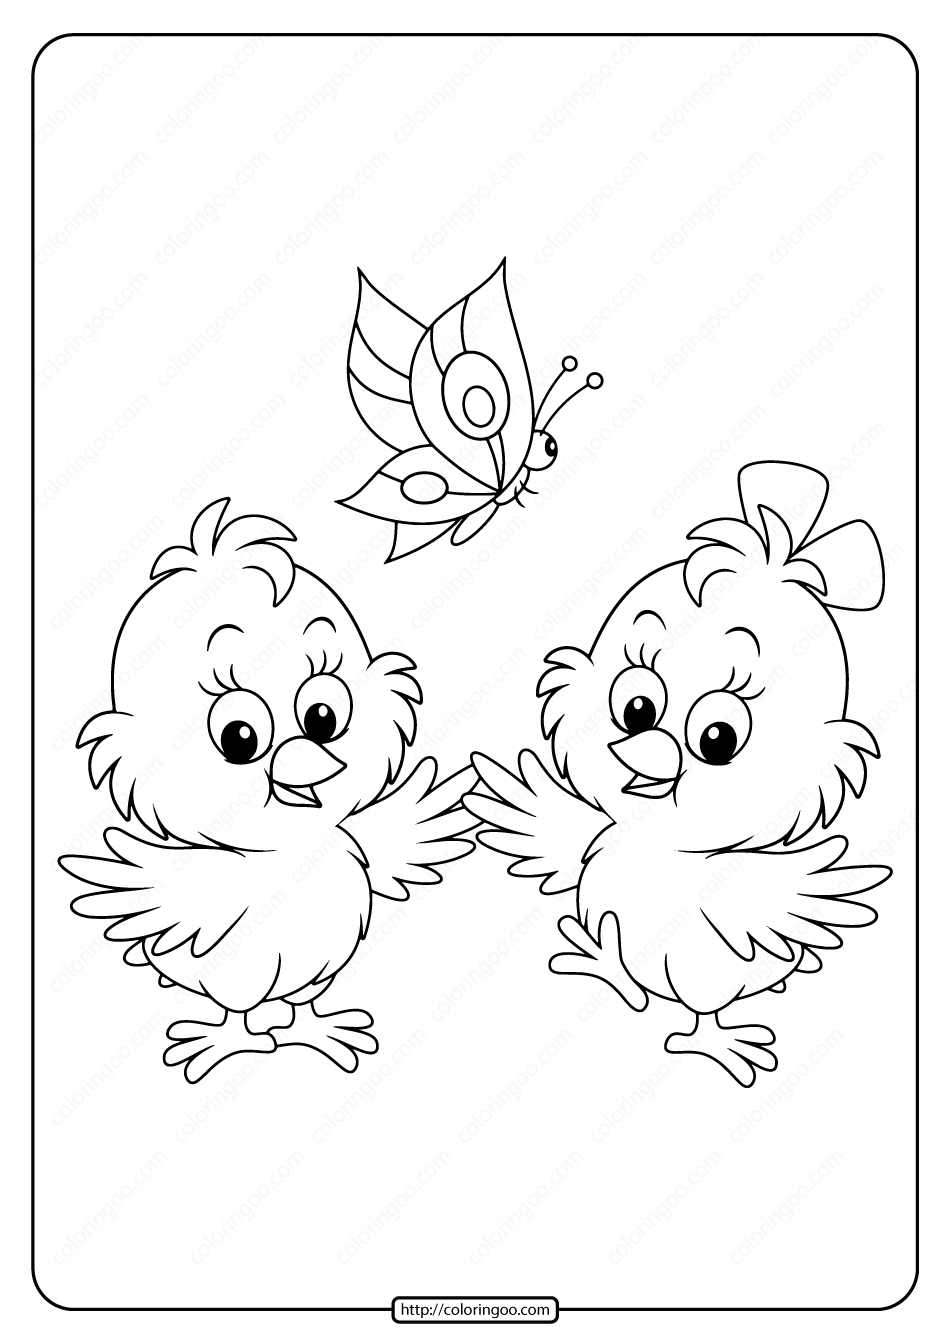 Baby Chick And a Butterfly Pdf Coloring Page